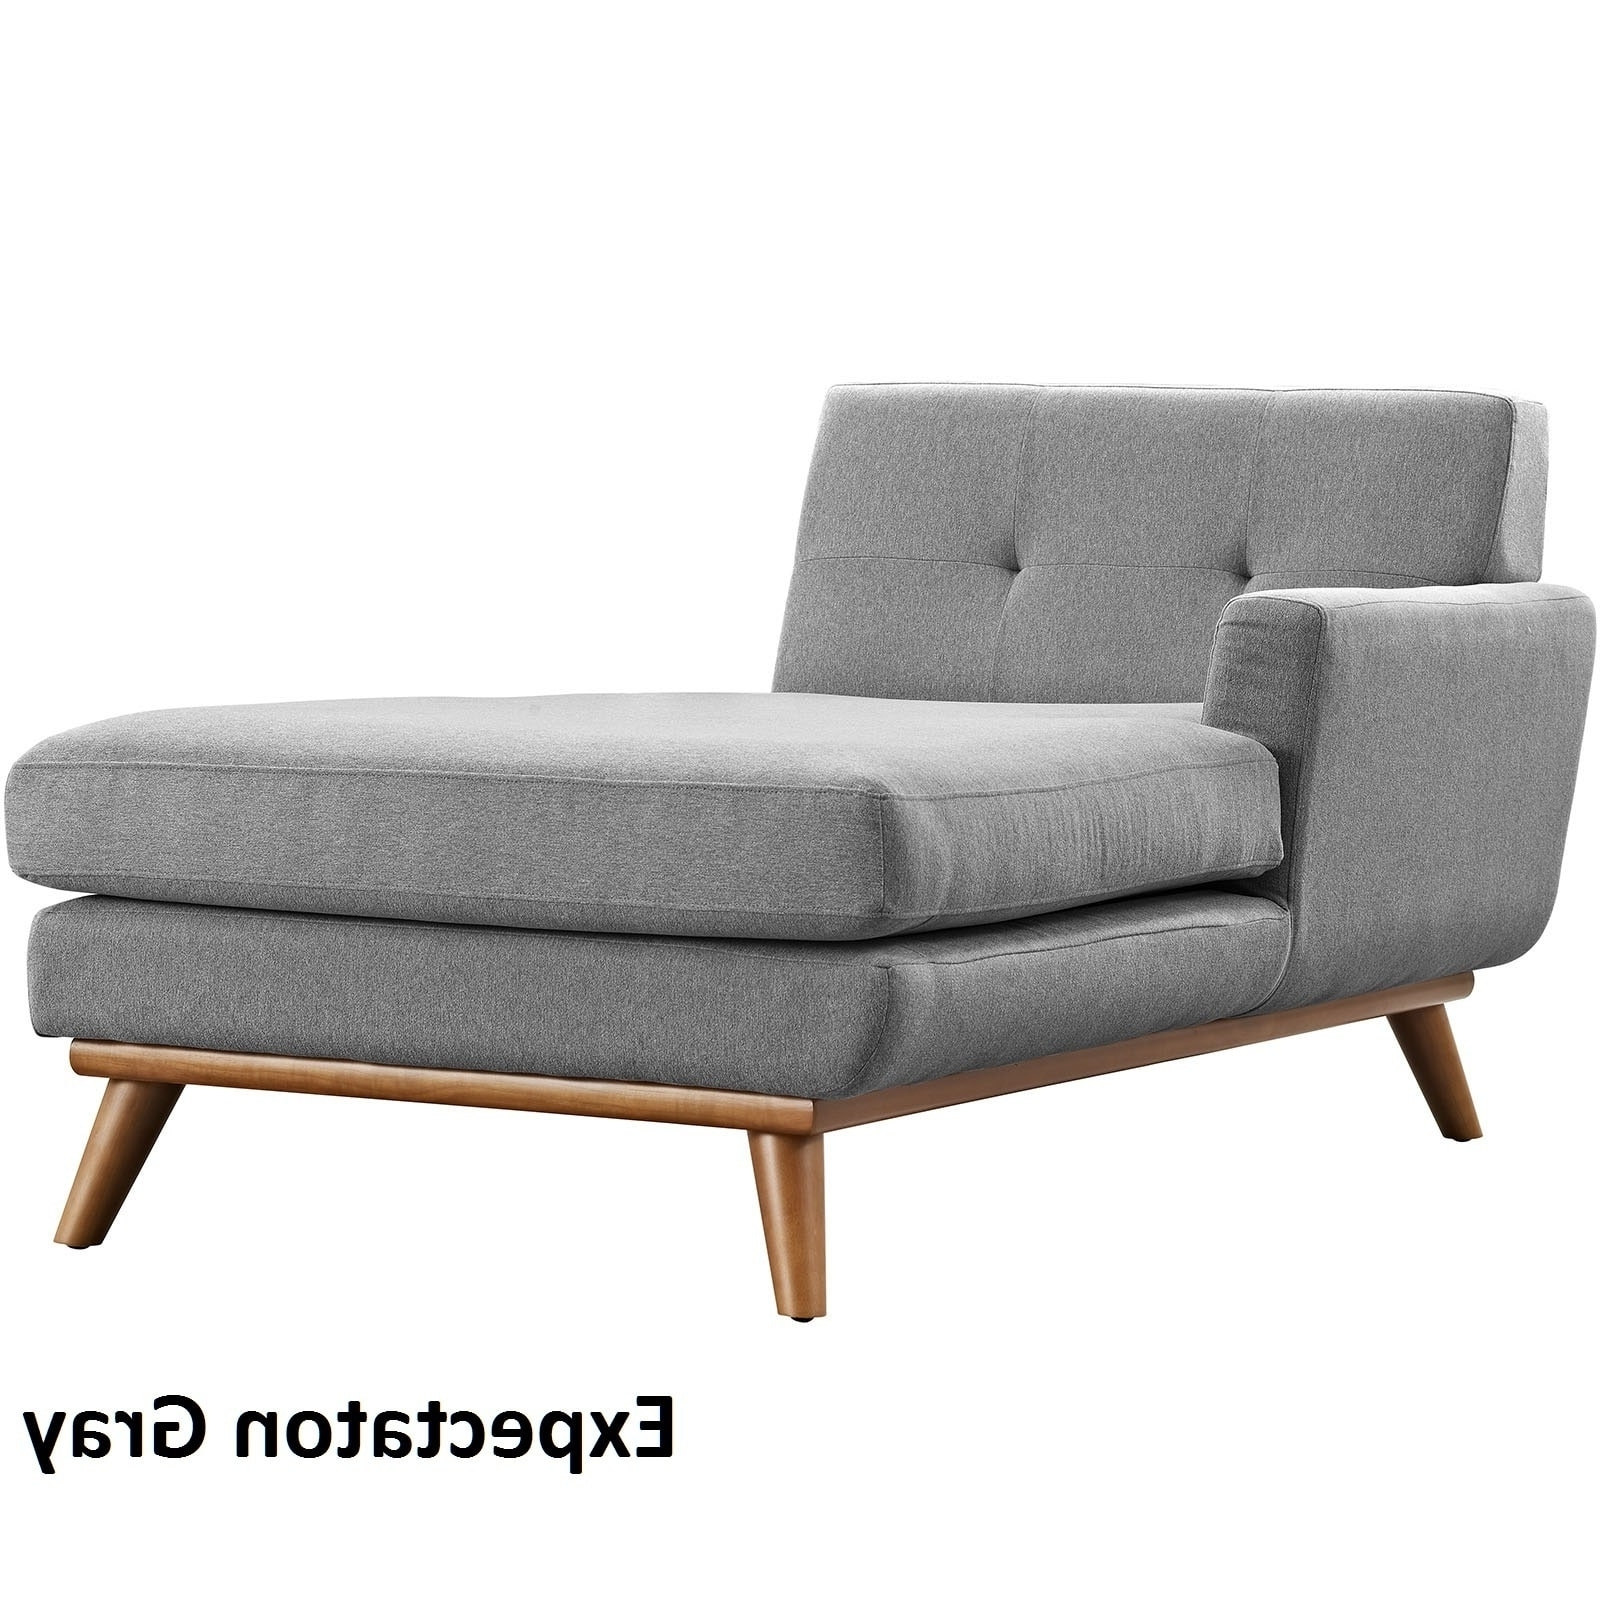 Well Known Left Arm Chaise Lounges Regarding Engage Left Arm Mid Century Chaise Lounge – Free Shipping Today (View 3 of 15)